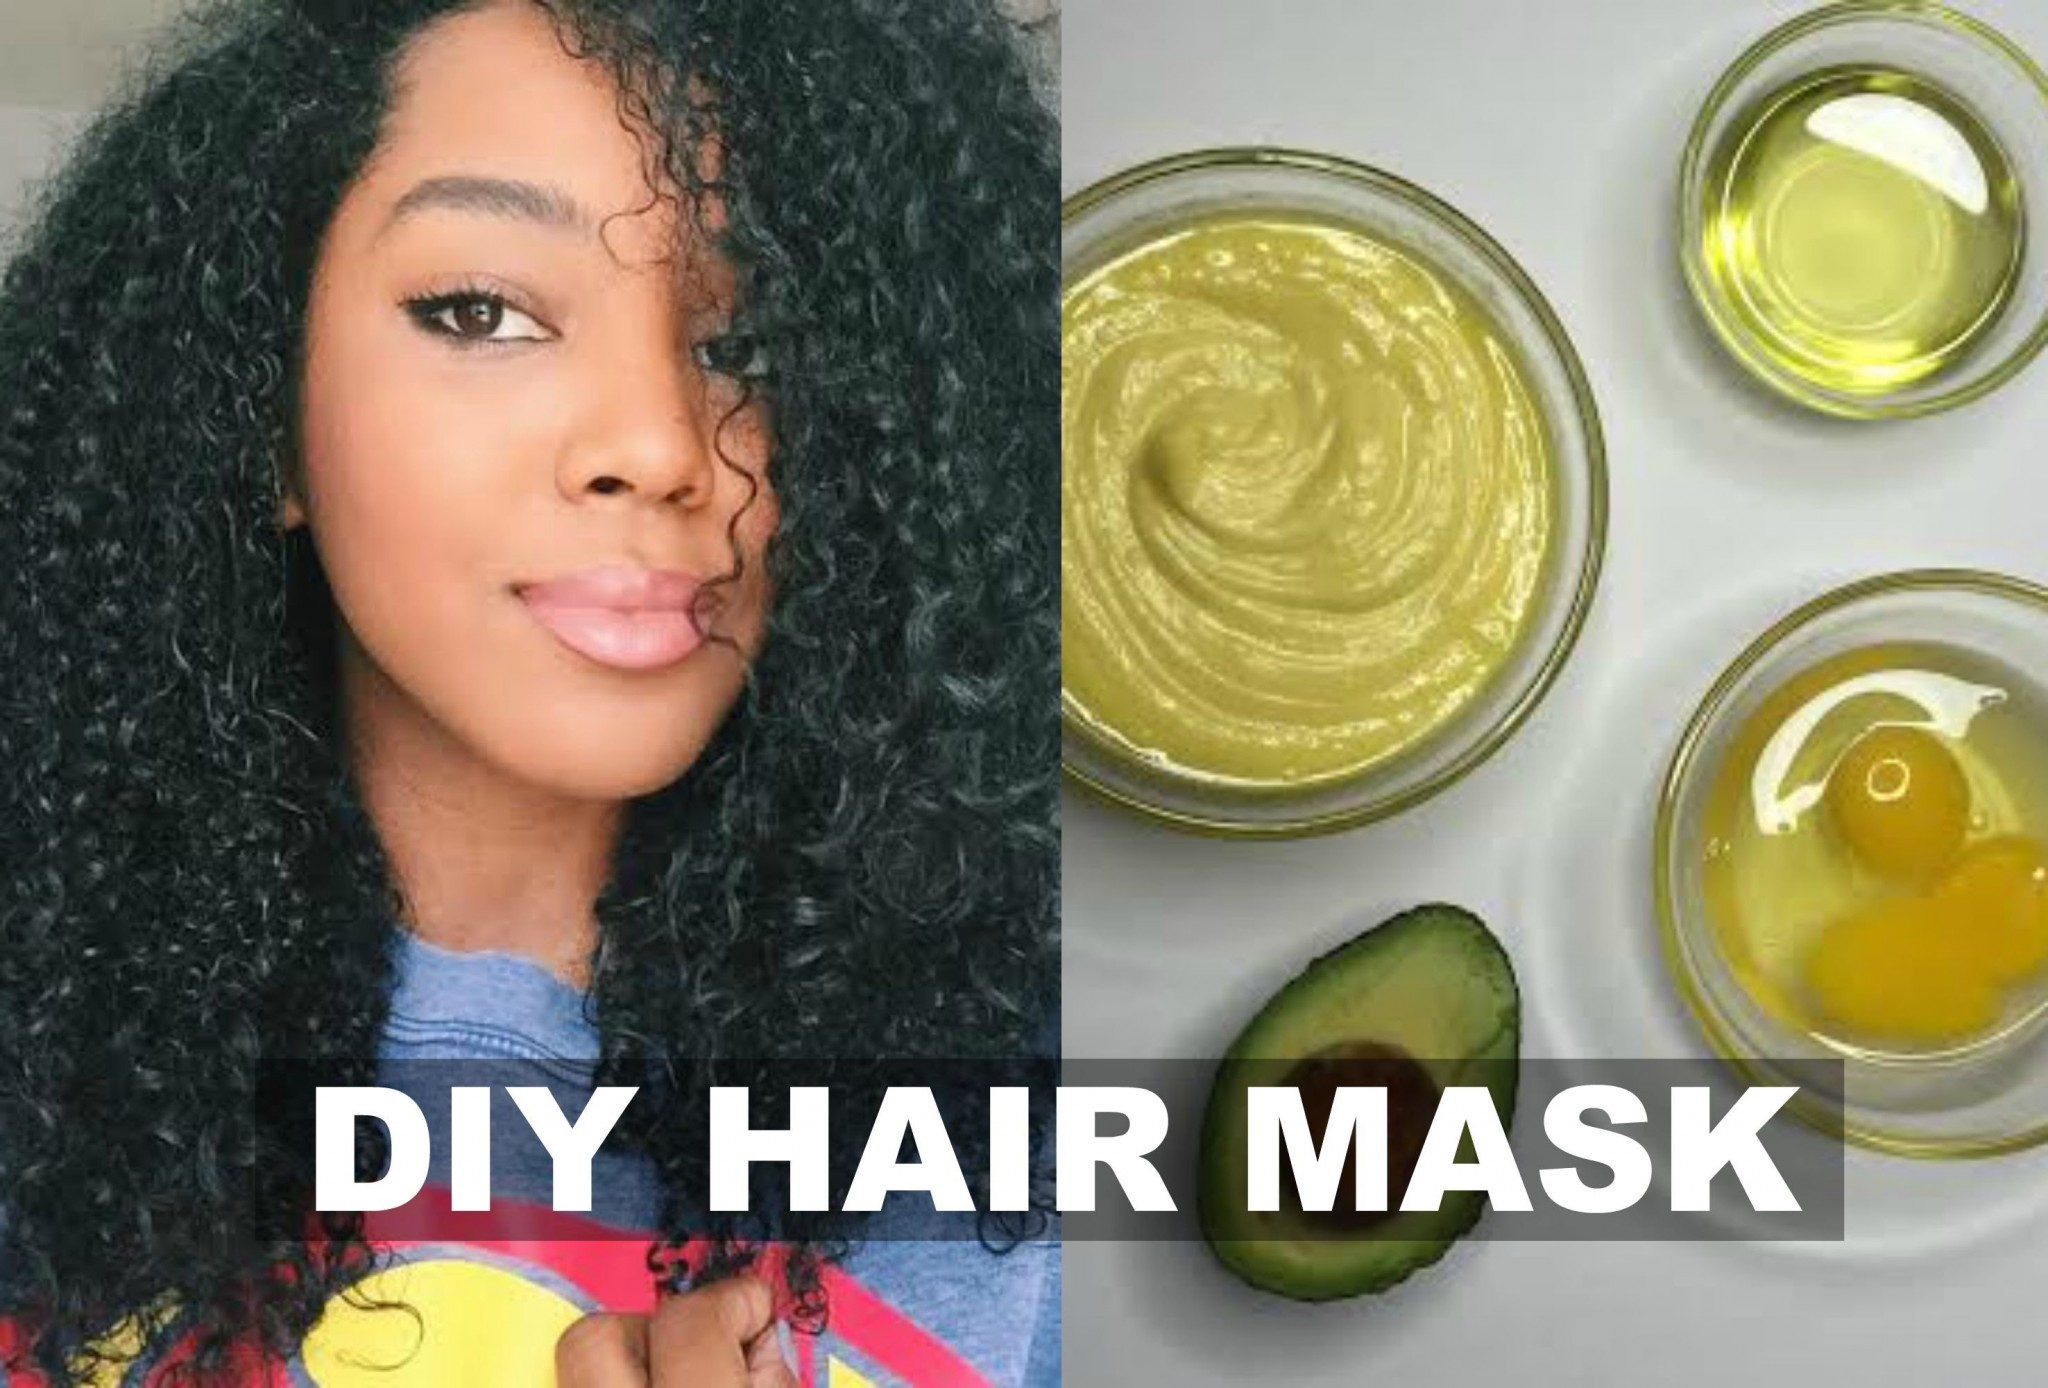 diy hair mask with organic mayo and avocado for natural hair conditioning strength growth. Black Bedroom Furniture Sets. Home Design Ideas